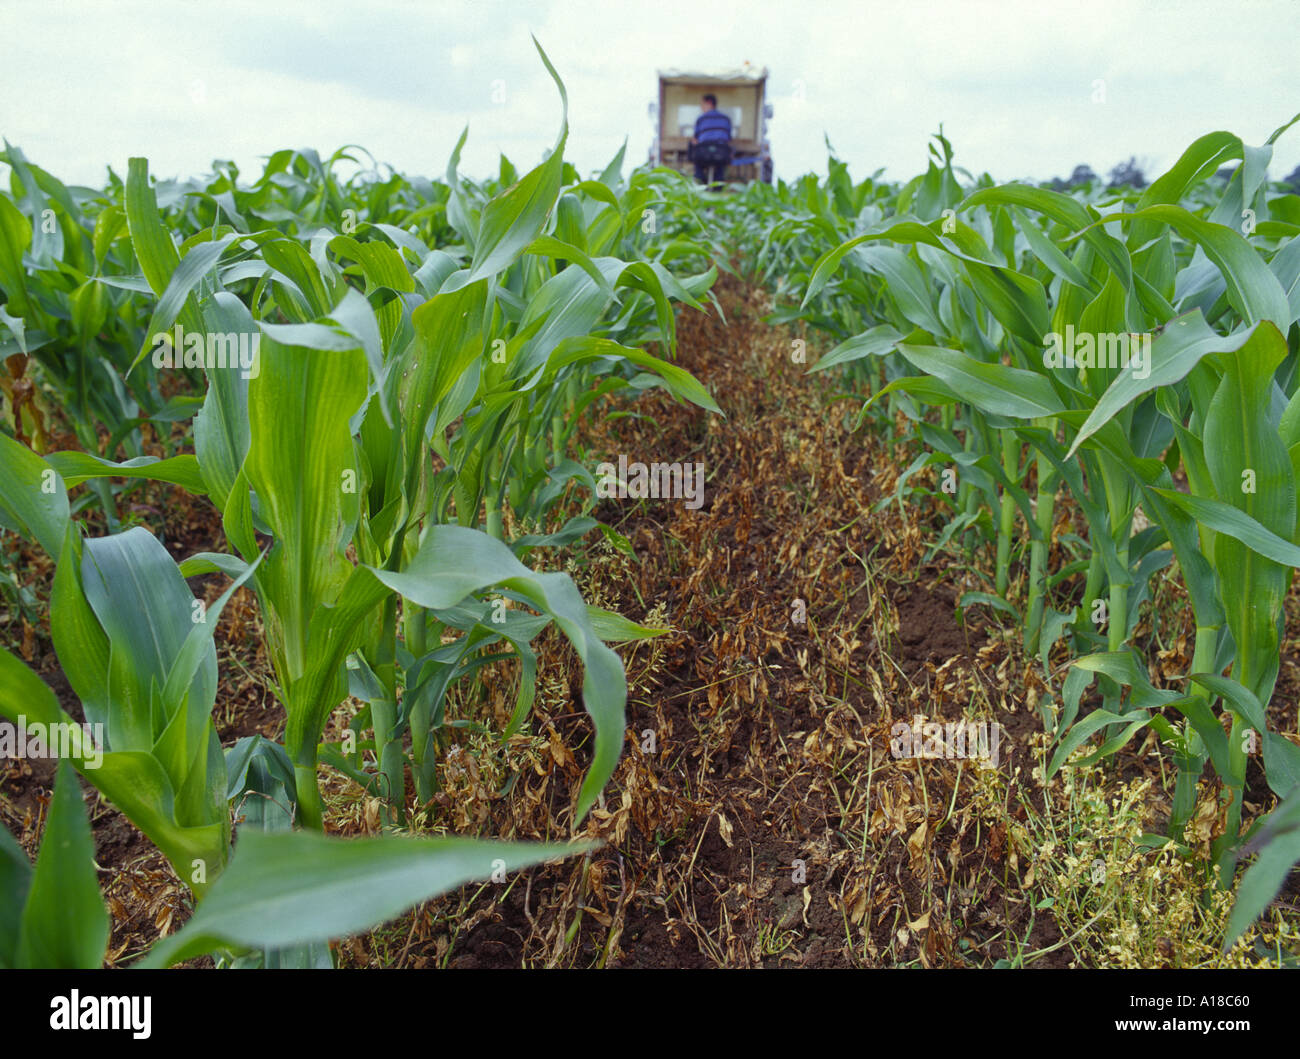 GM Transgenic maize corn in field trial showing ground and mature maize plus tractor in distance Image shows advantage of GM - Stock Image